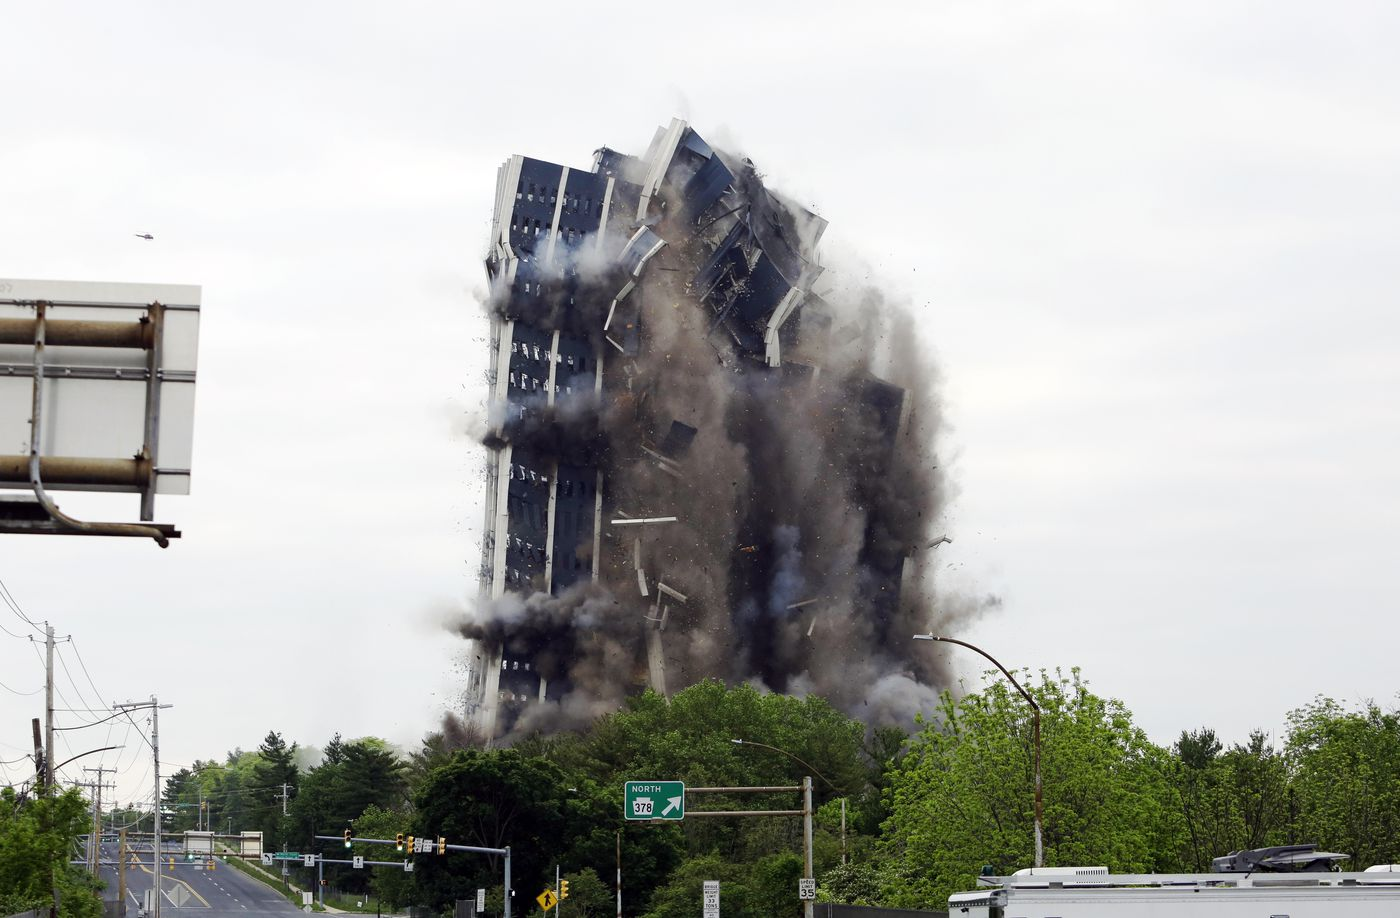 Martin Tower, former world headquarters of Bethlehem Steel, implodes Sunday, May 19, 2019 in Bethlehem, Pa. Crowds gathered to watch the demolition of the area's tallest building, a 21-story monolith that opened at the height of Bethlehem Steel's power and profitability but had stood vacant for a dozen years after America's second-largest steelmaker went out of business. (AP Photo/Jacqueline Larma)